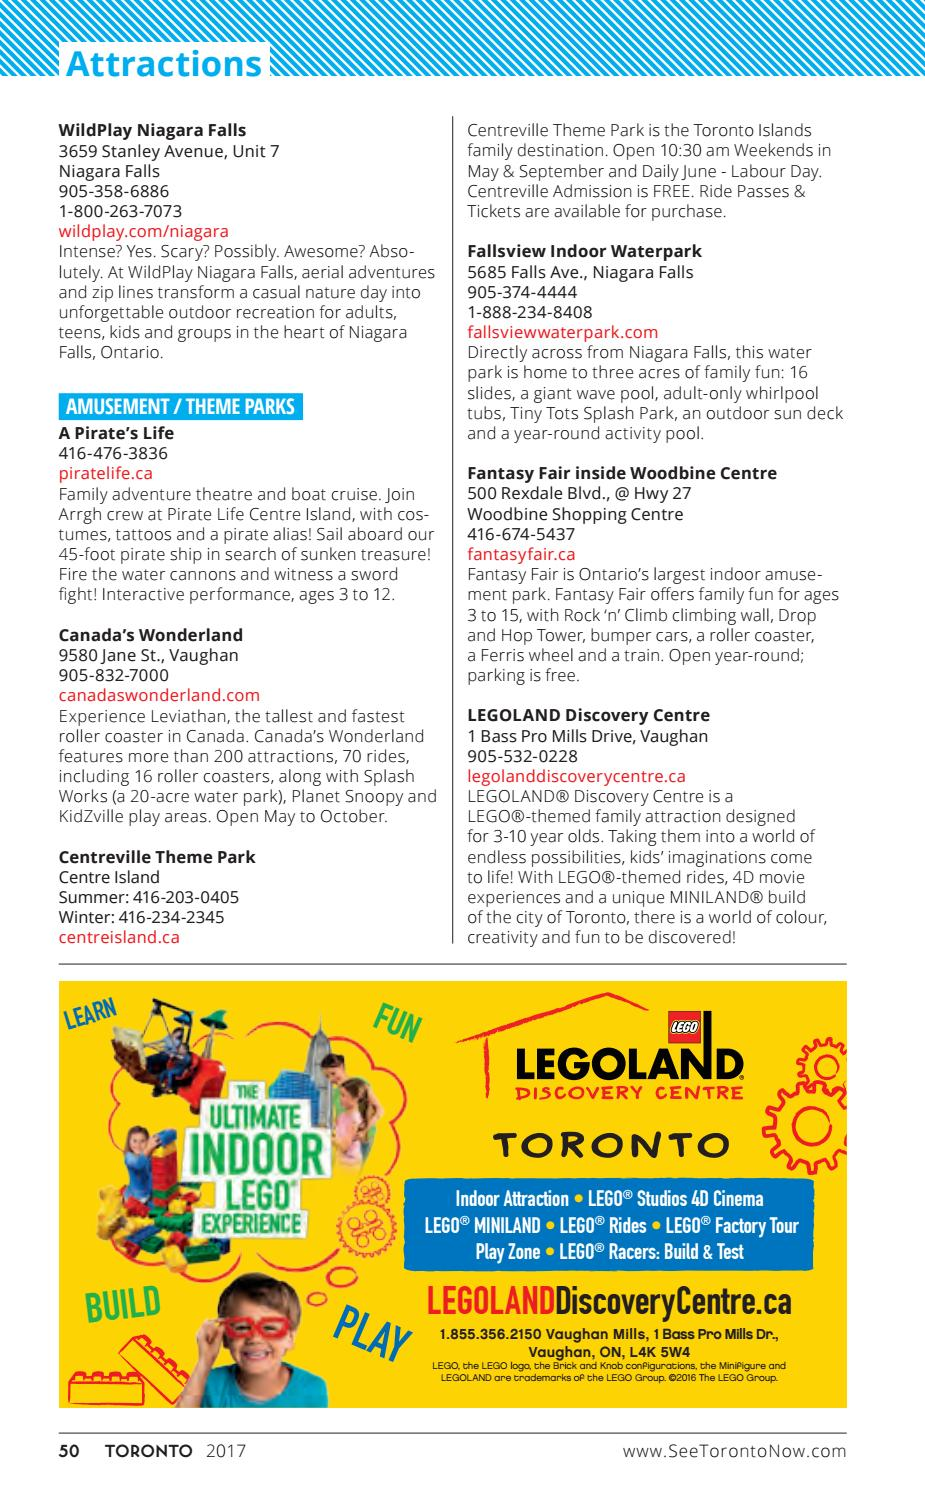 2017 Toronto Visitor Guide By Tourism